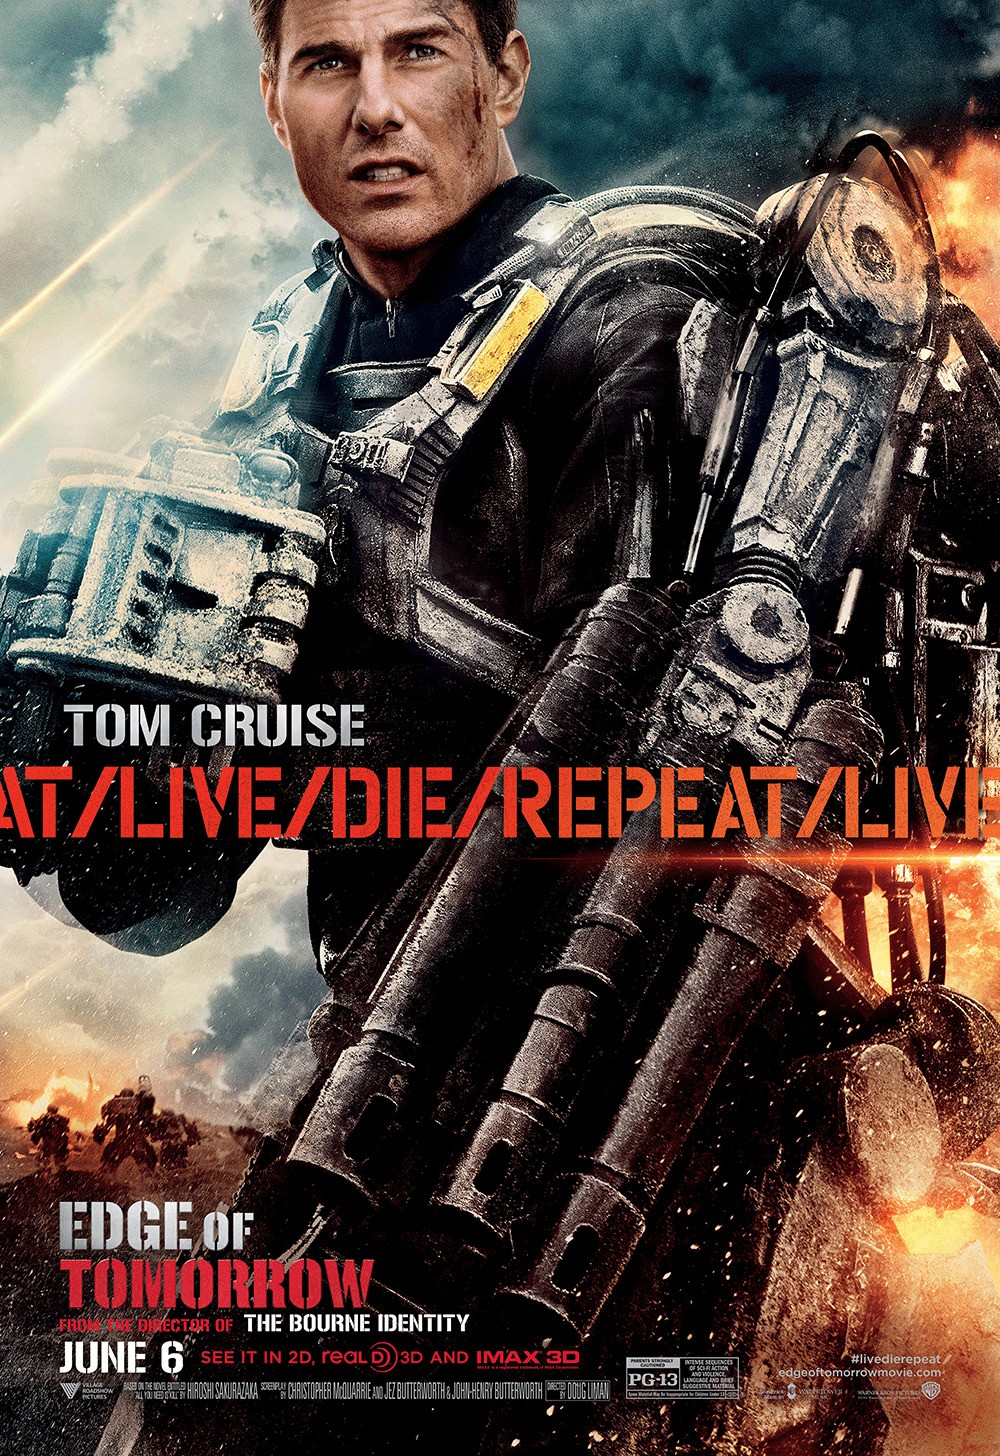 Two New Character Posters For 'Edge of Tomorrow' | We Geek ...